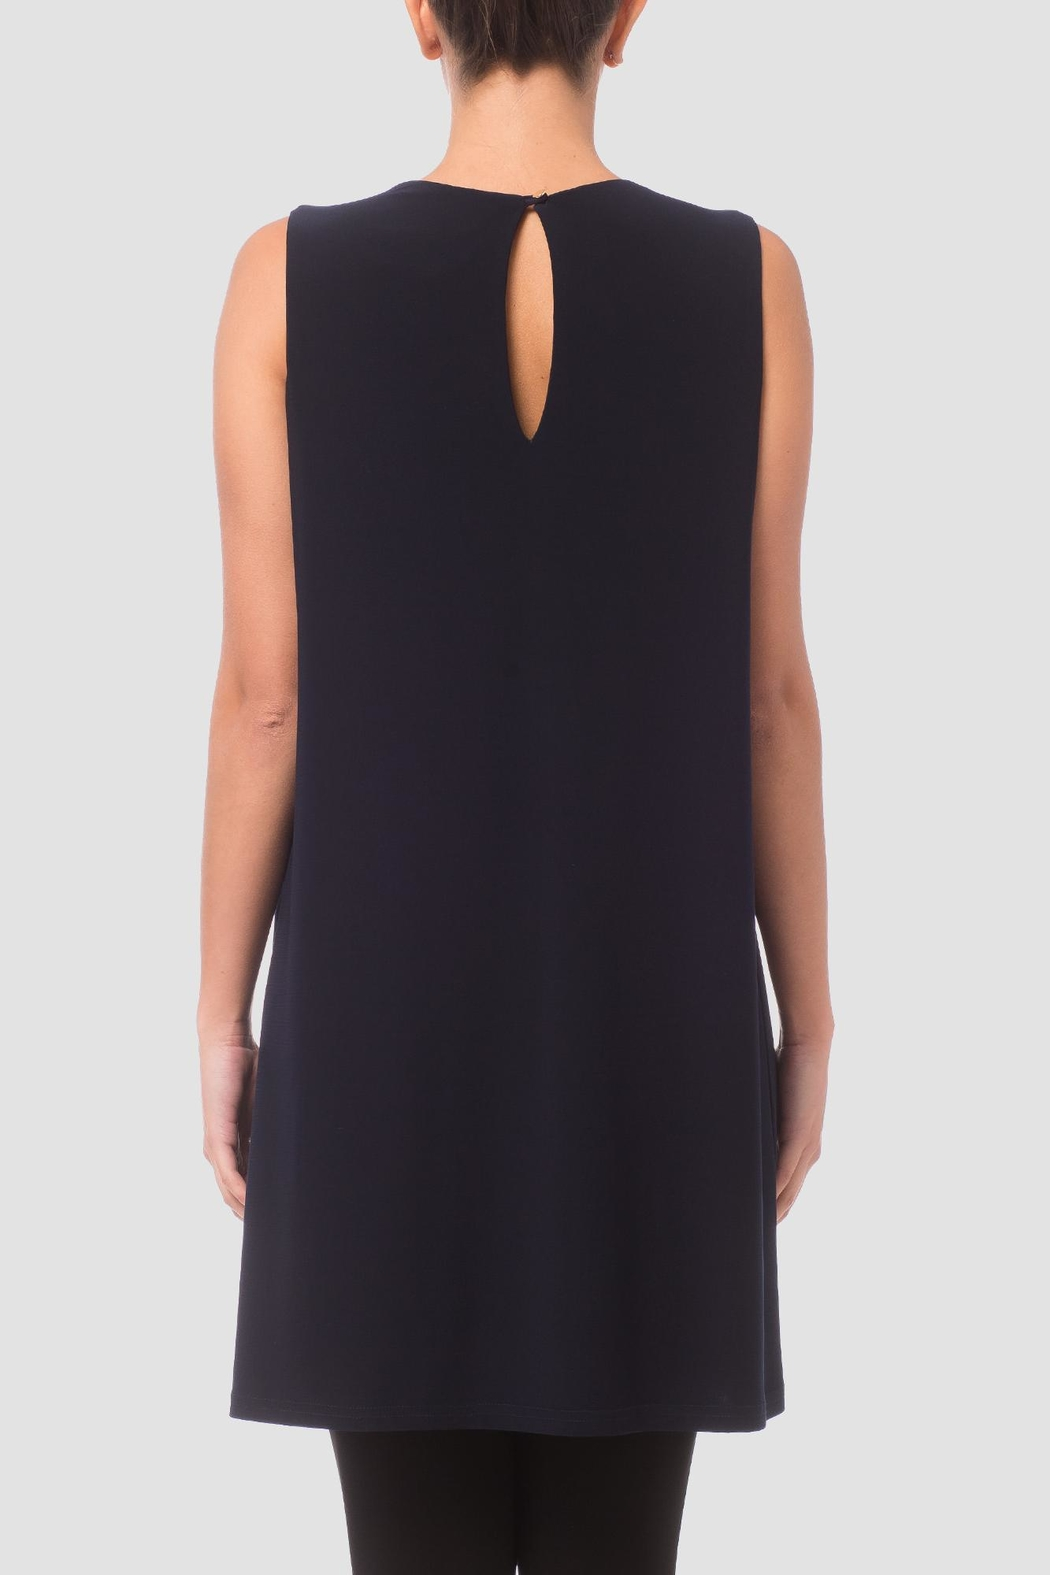 Joseph Ribkoff Black Tunic/dress - Front Full Image